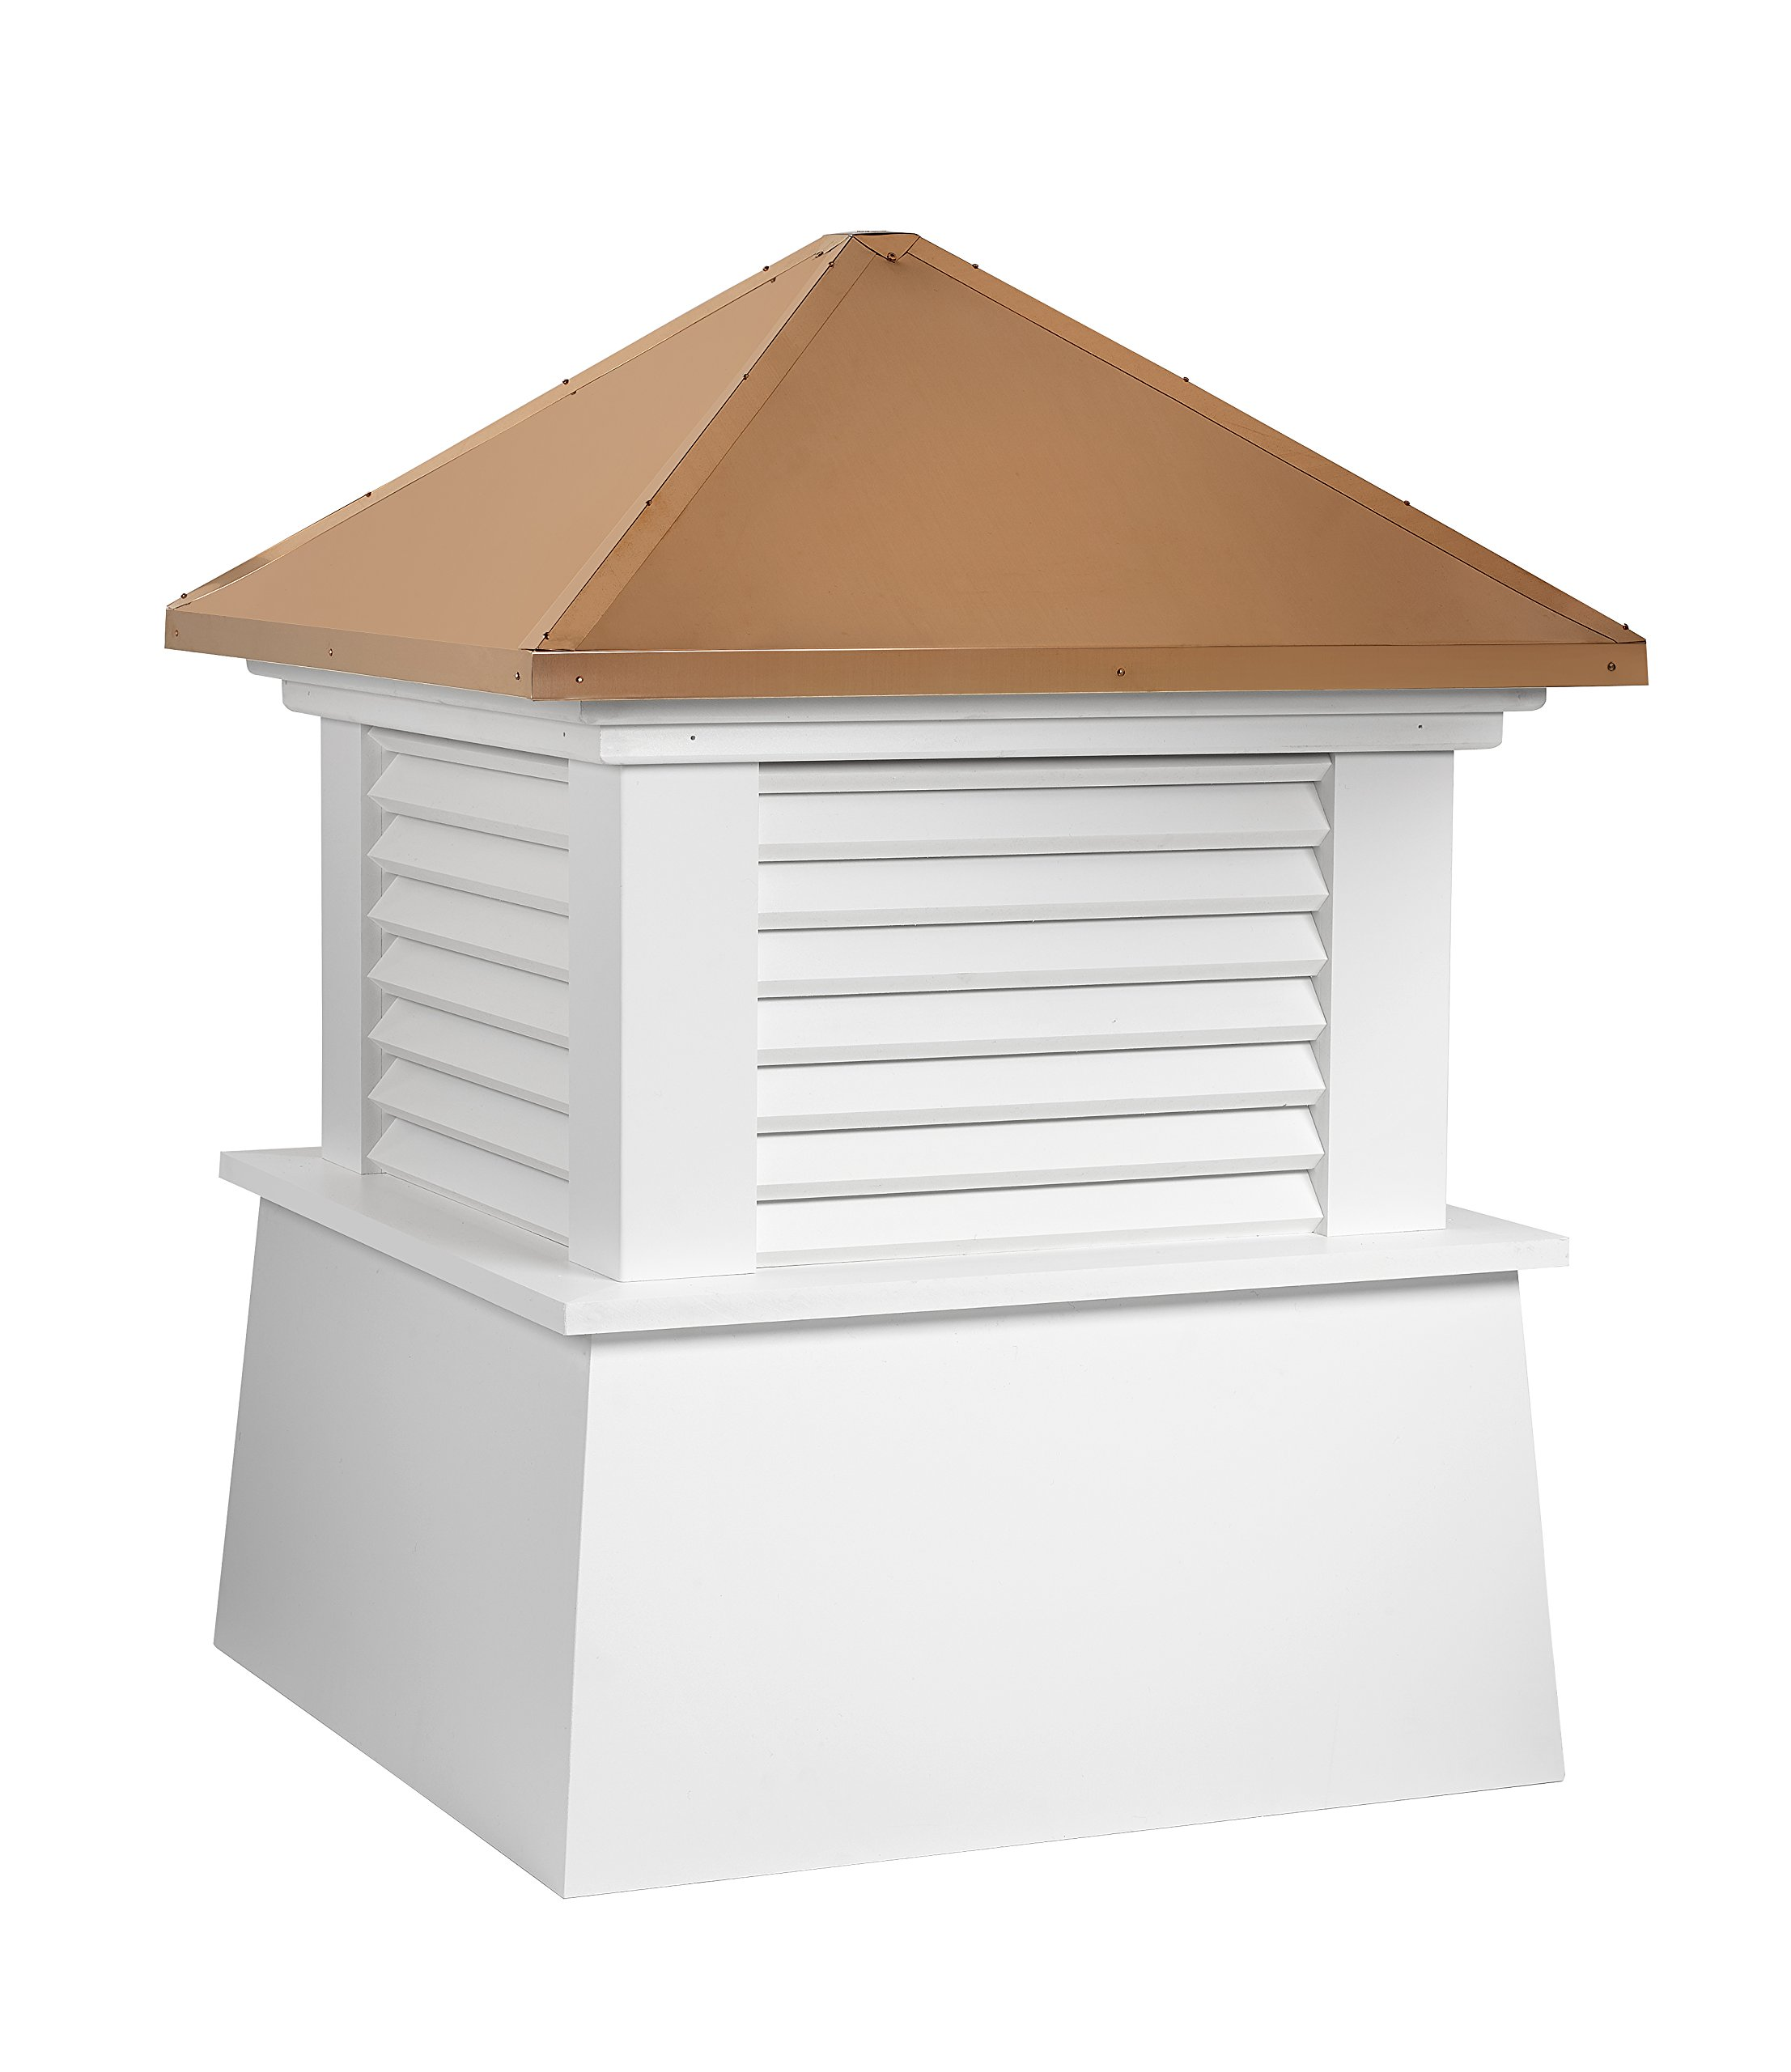 "Manchester Vinyl Cupola, Perfect Size for a 1 Car Garage, 26"" square x 32"" high, Pure Copper Roof, Quick Ship by Good Directions"